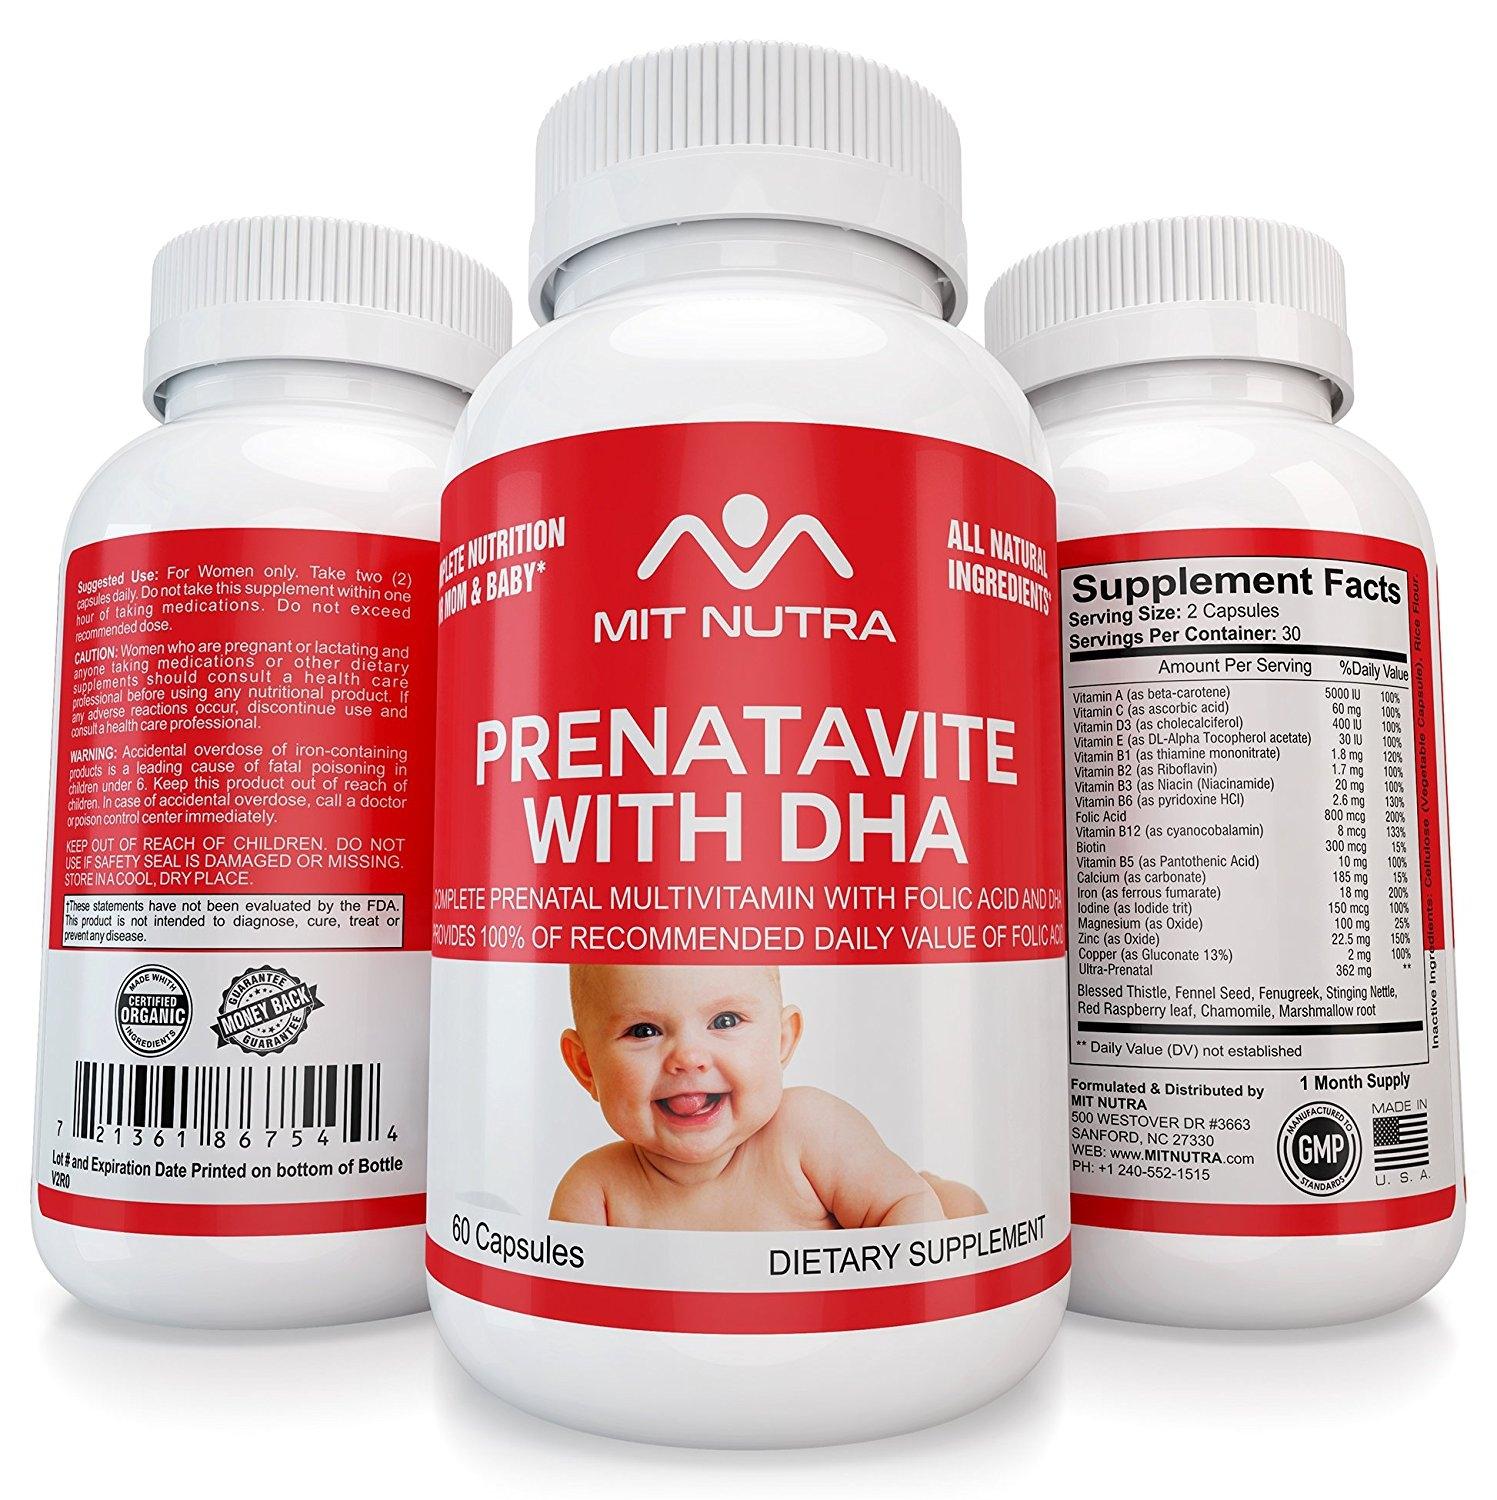 Organic Prenatal Multivitamins With Folic Acid and Full Spectrum of Daily Vitamins - Great for Expecting and Post Pregnancy by MIT NUTRA